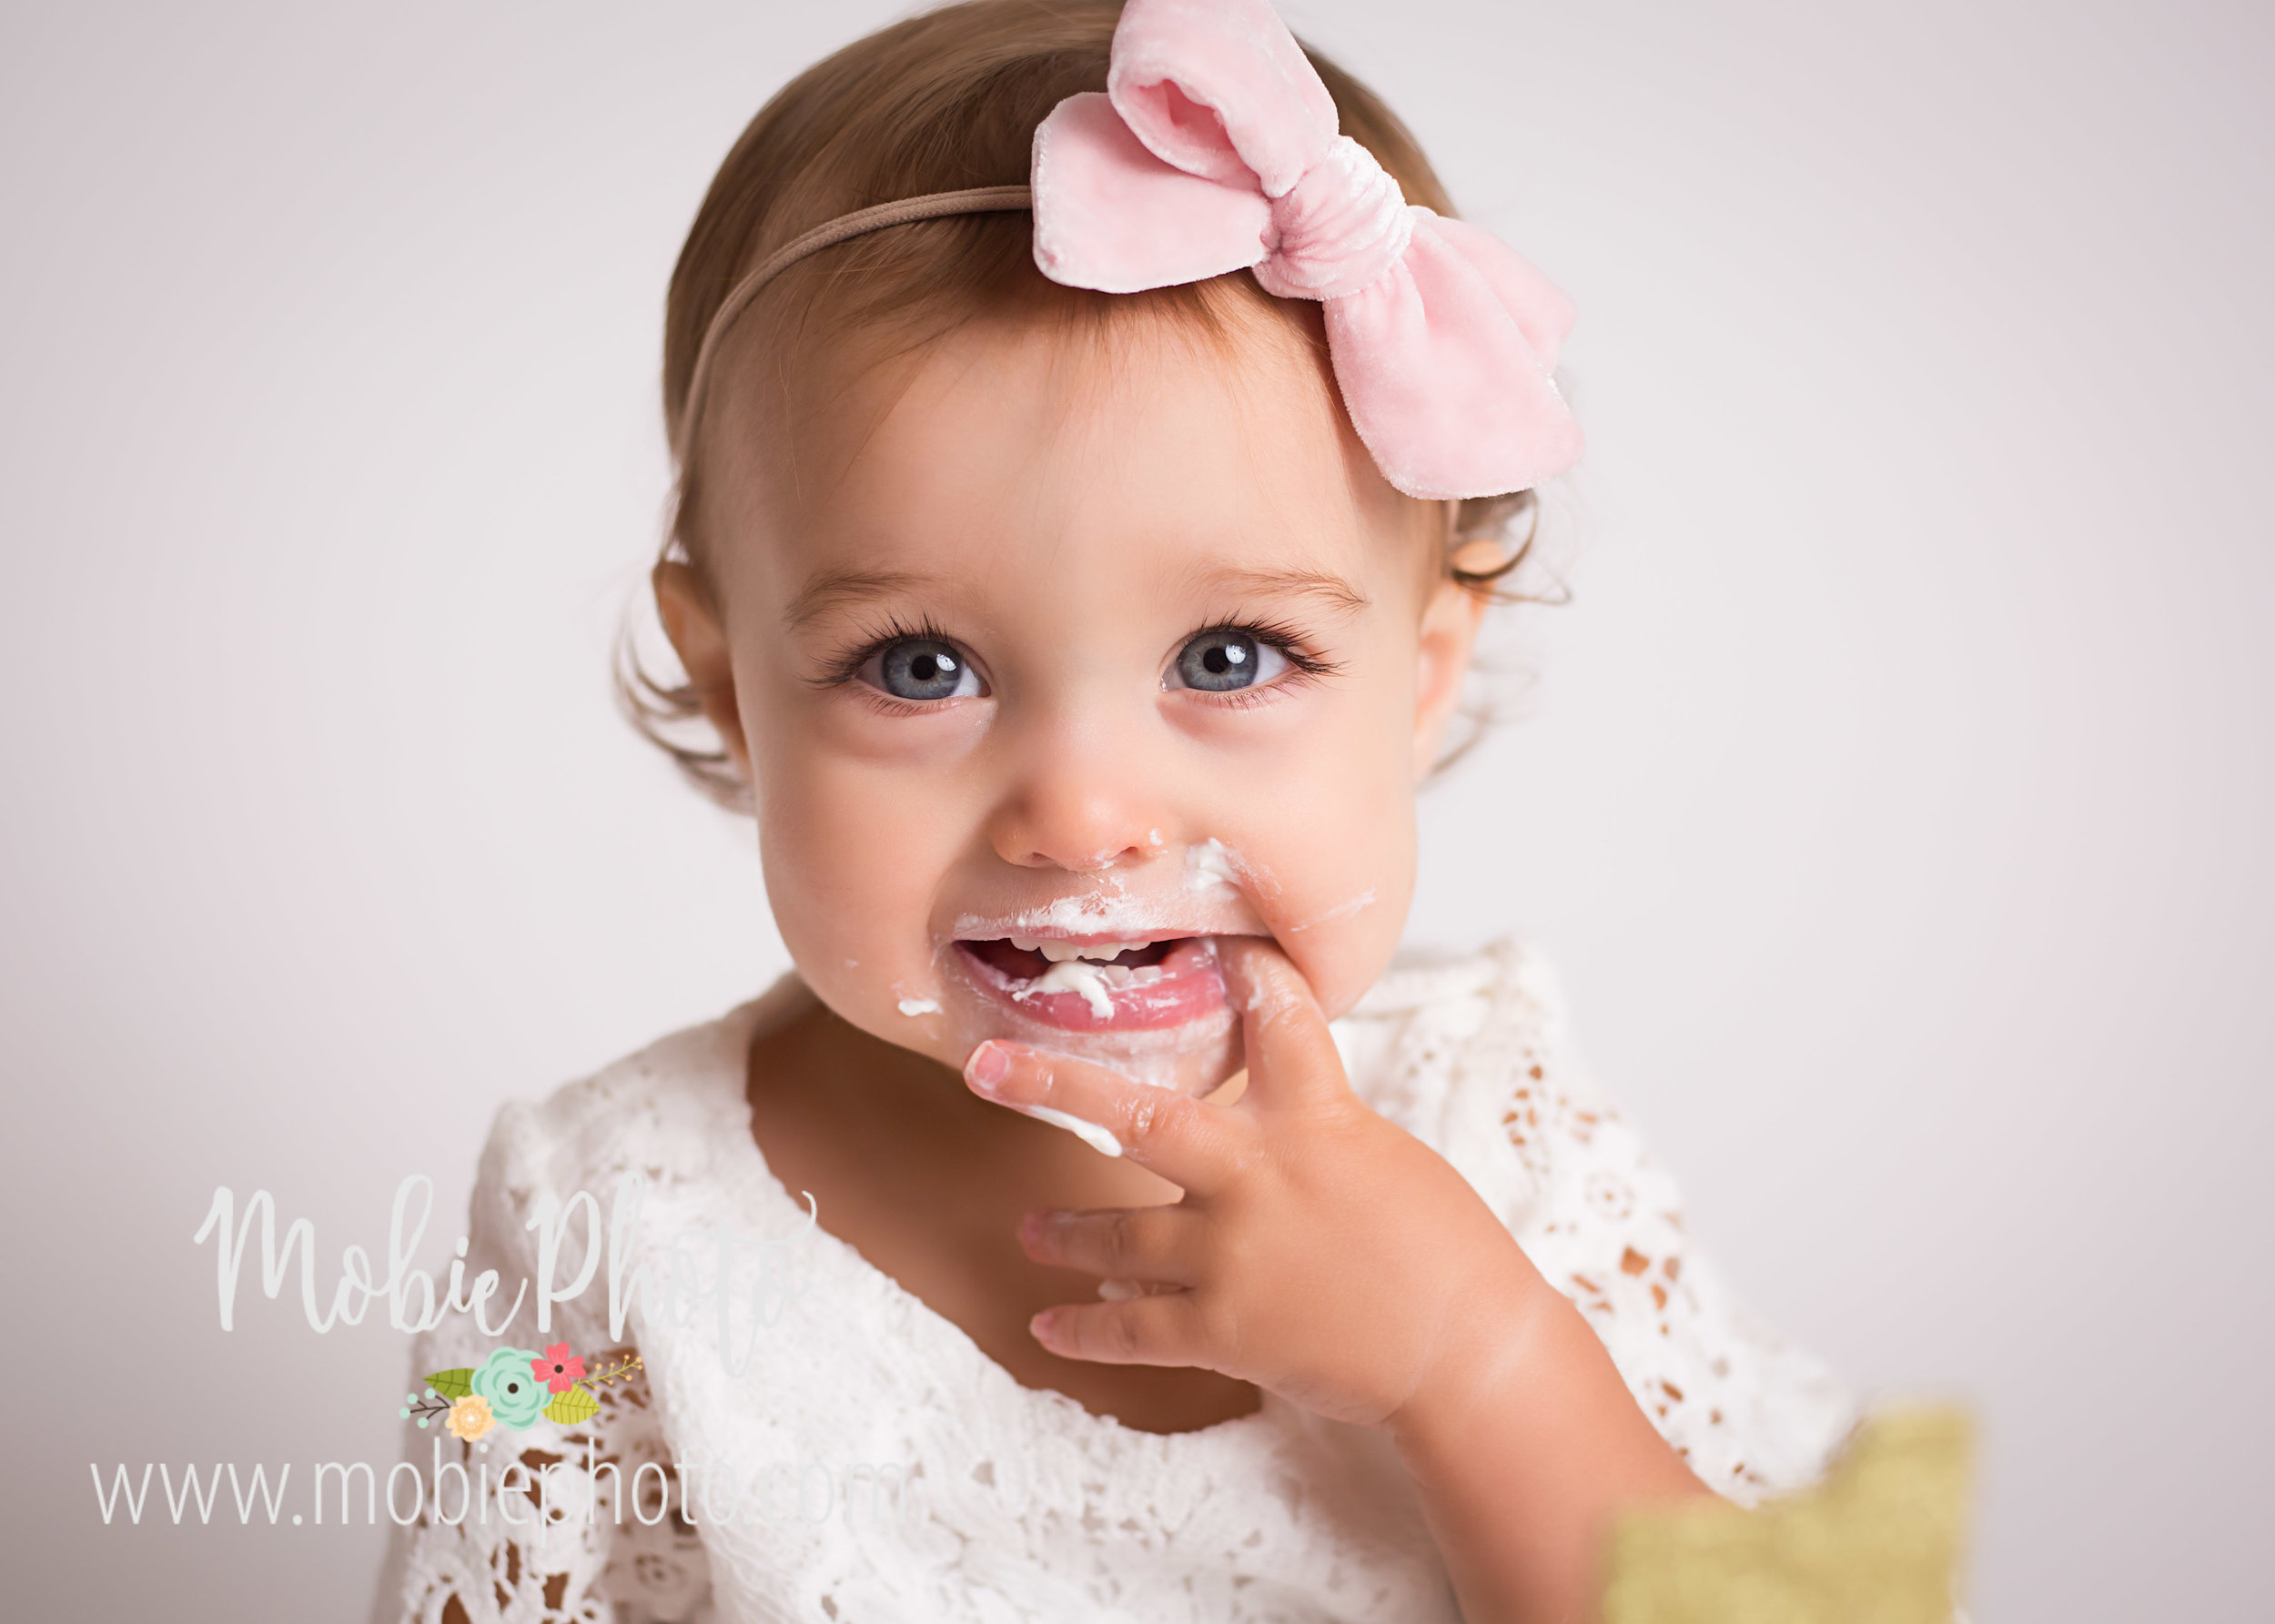 Mobie Photo - Utah Newborn Photographer - First birthday cake smash photo shoot